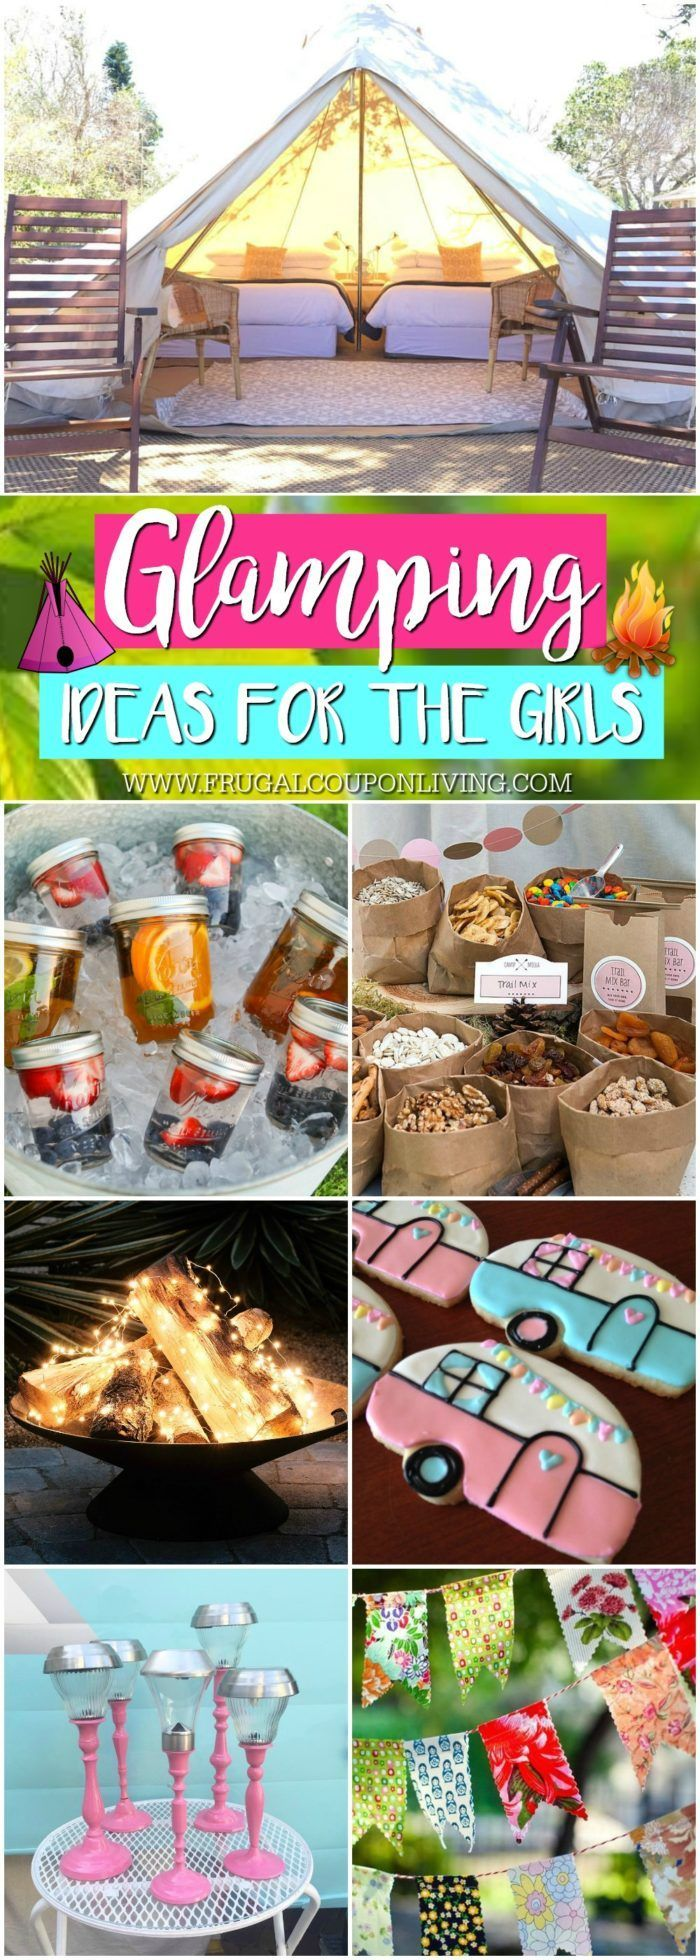 Glamping Ideas for the Ultimate Camping Trip for the Girls!Glamping: where stu...